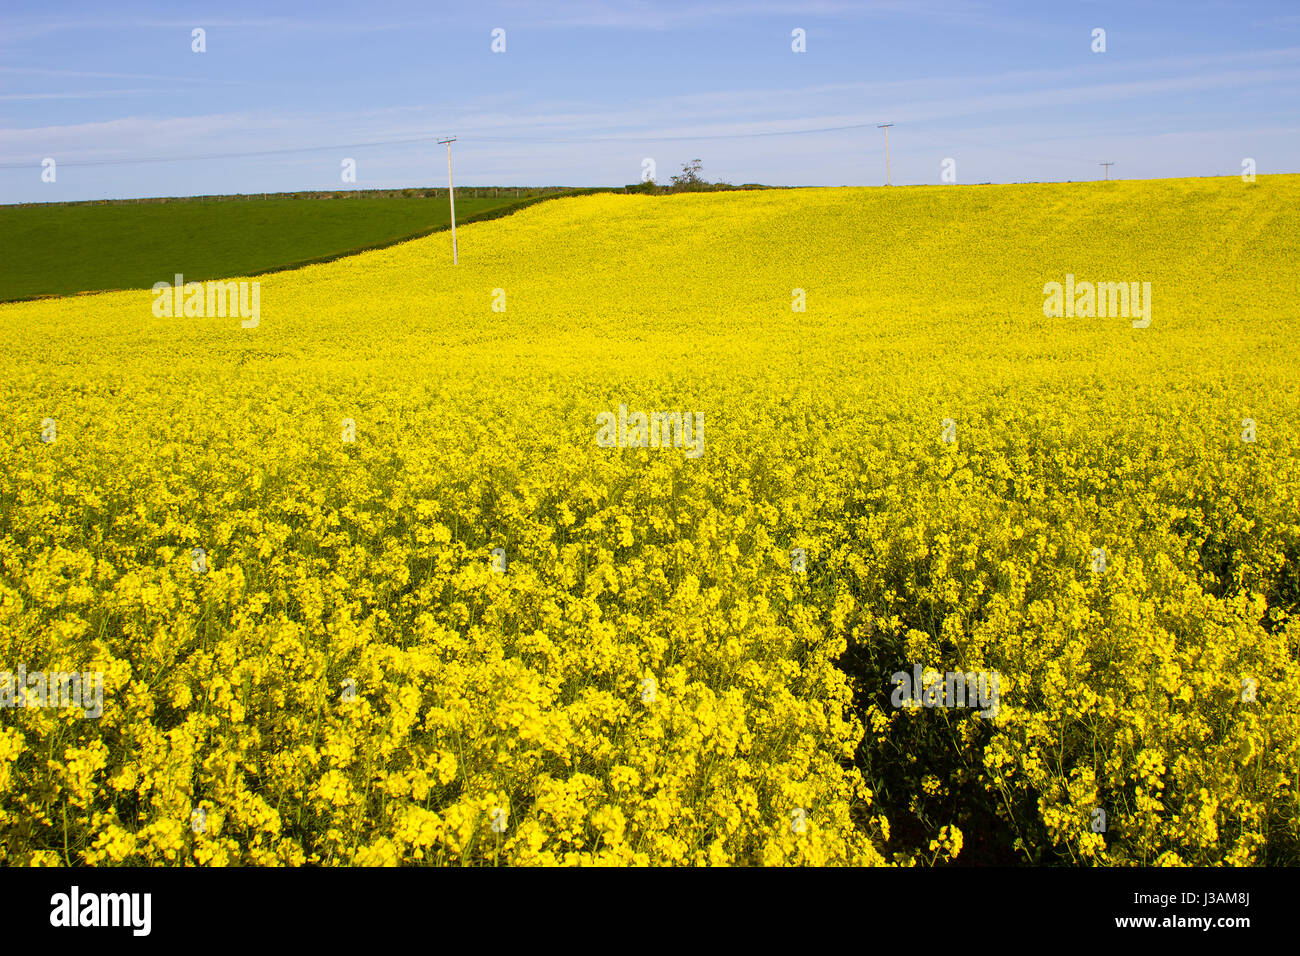 A Field Of Rapeseed Oi An Irish Farm With Its Bright Yellow Flower